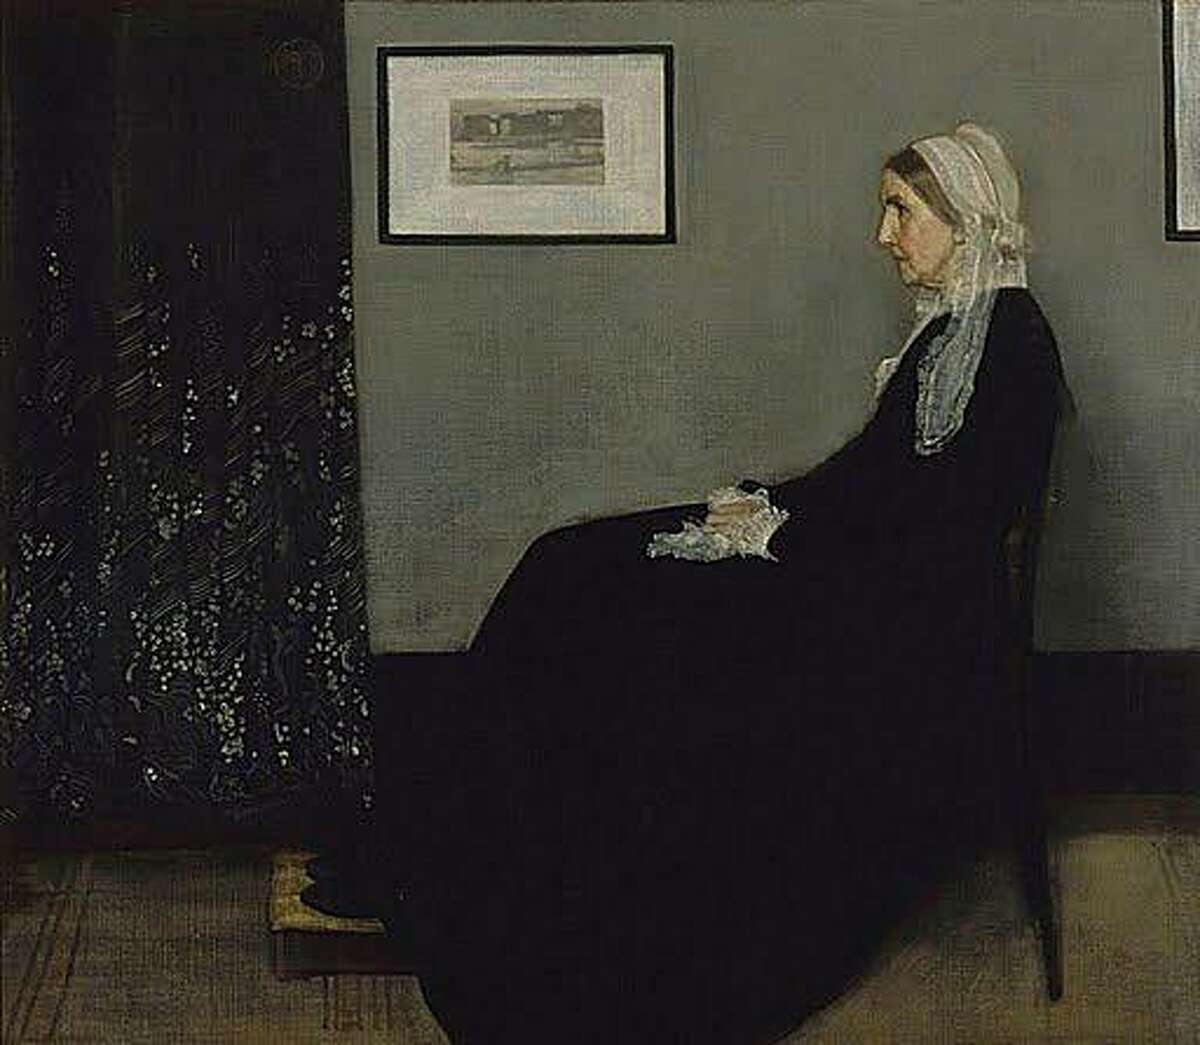 Arrangement in Gray and Black No. 1; Portrait of the Artist's Mother. 1871. James Abbott McNeill Whistler (1834-1903). Oil on canvas, 56 3/4 x 64 inches.  RMN (Musée d'Orsay)/Hervé Lewandowski